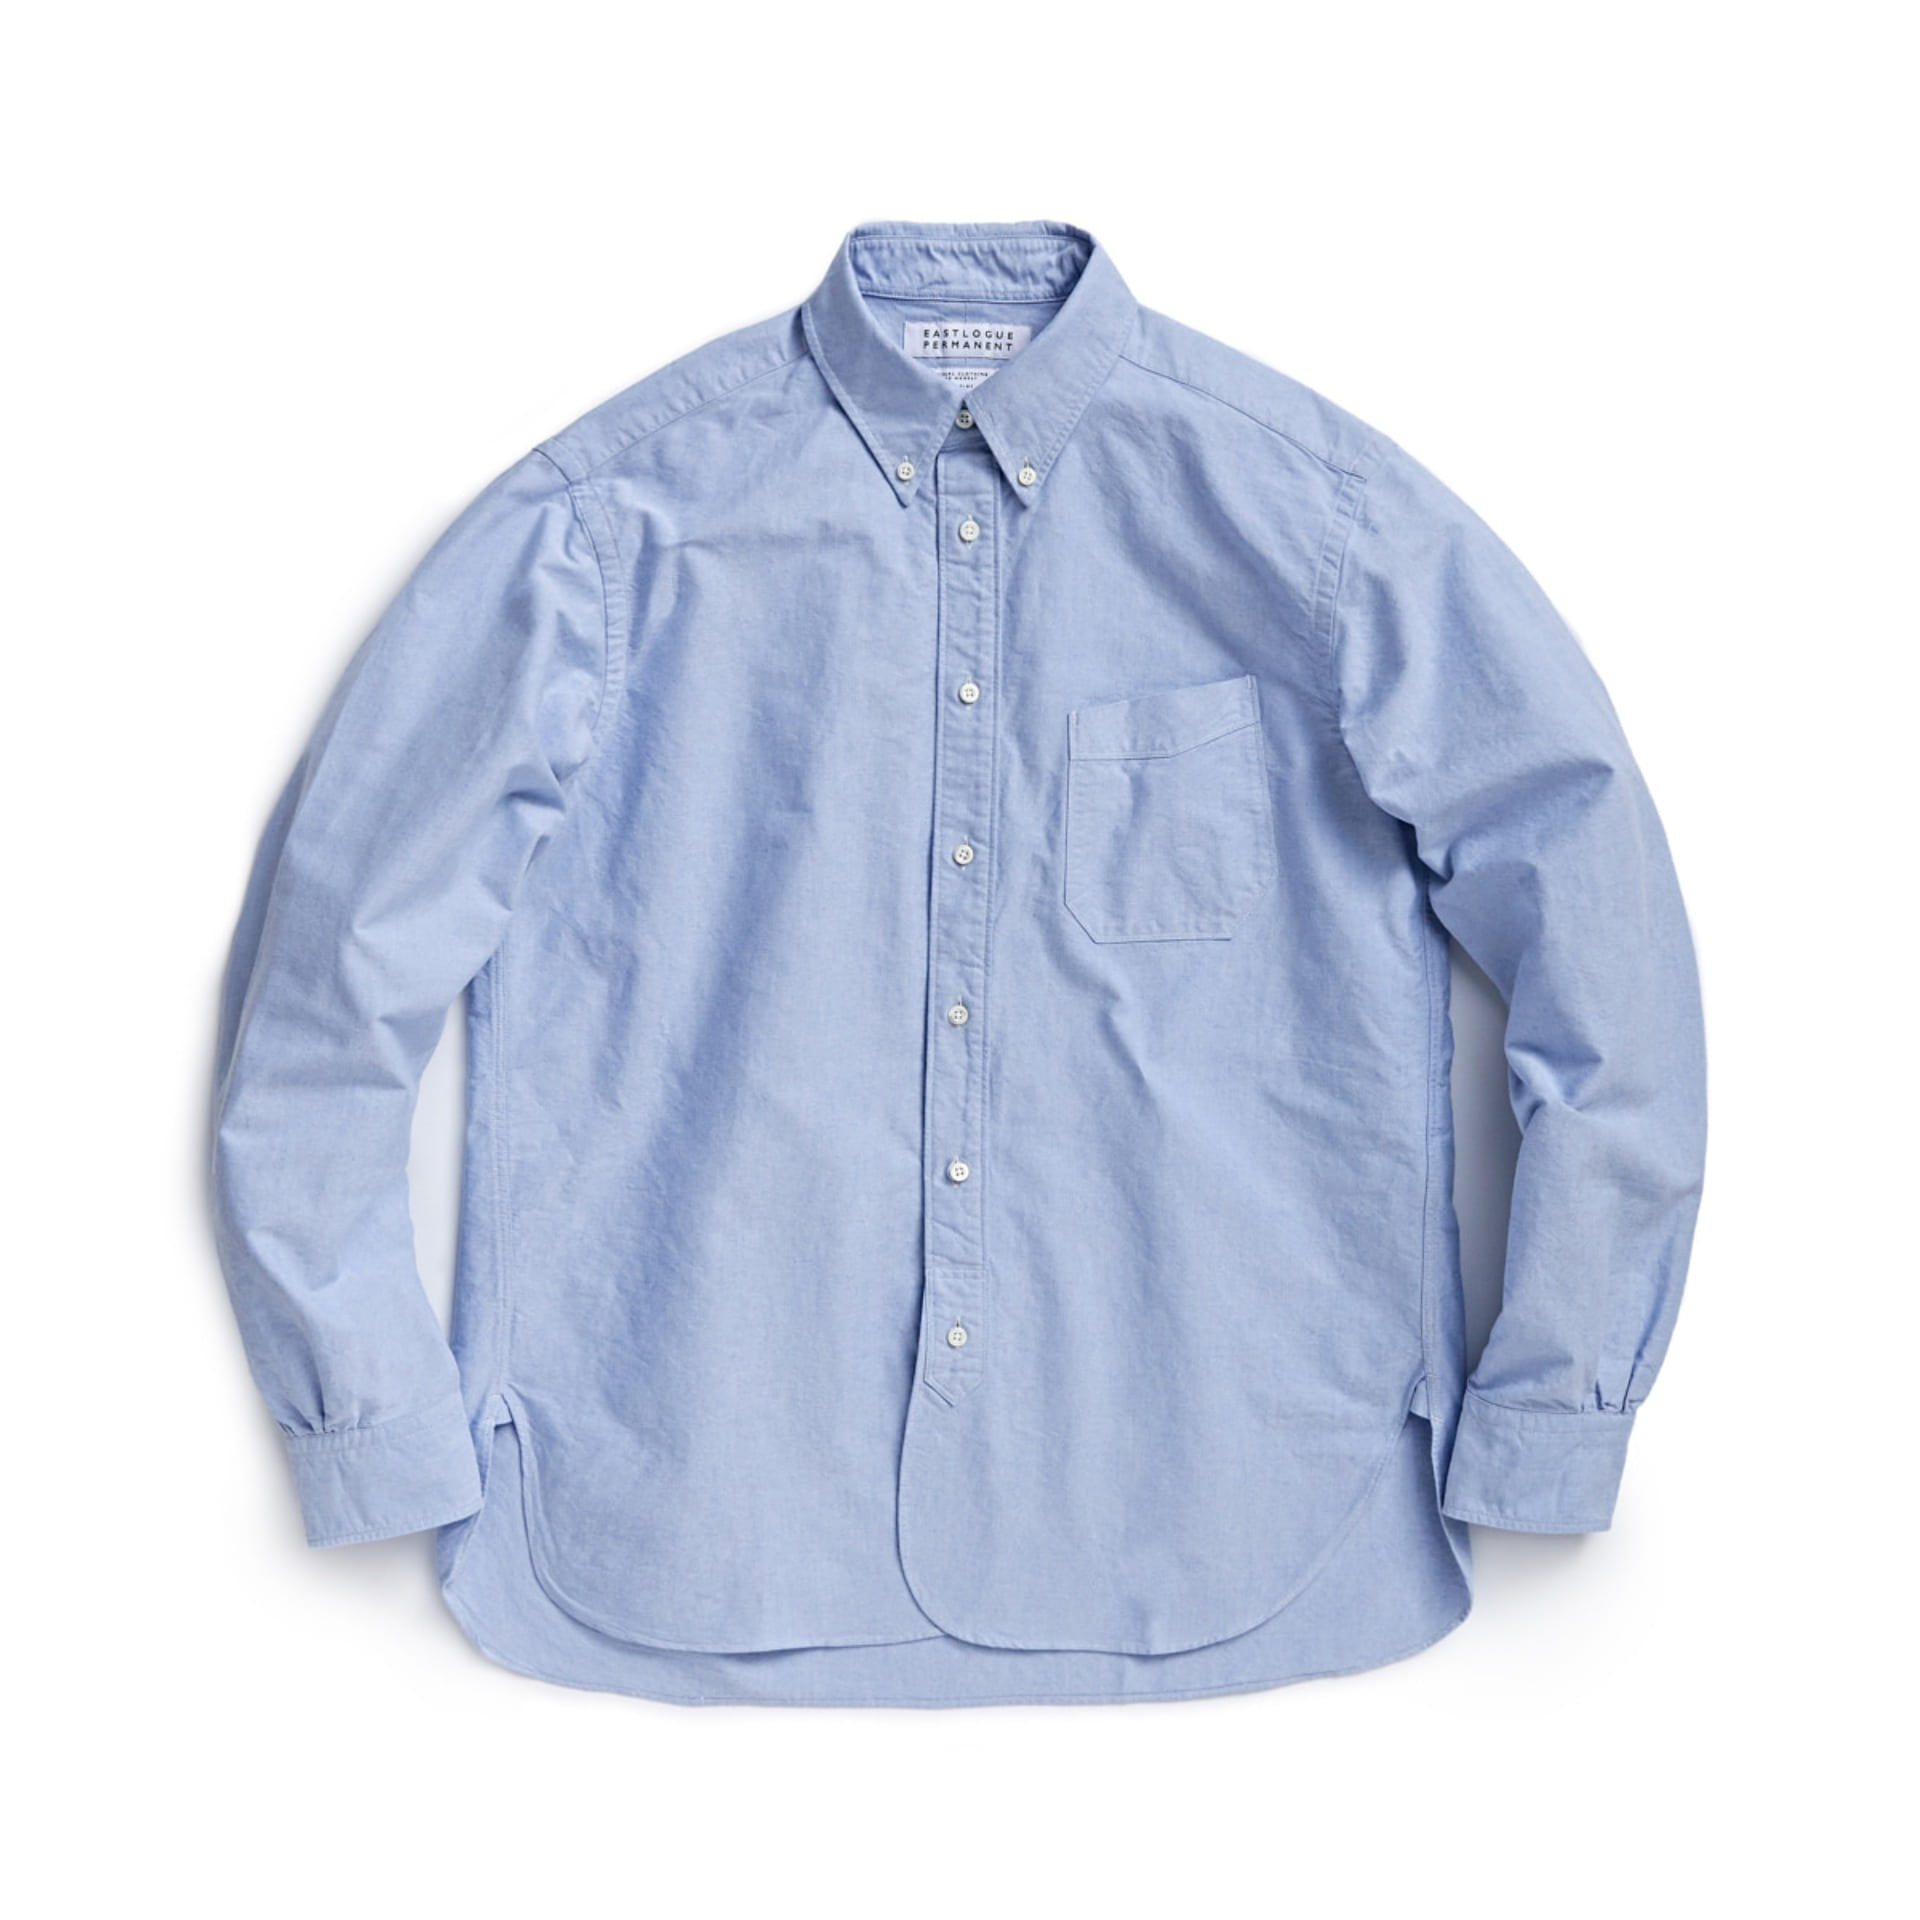 ELP B.D REGULAR SHIRT (Blue Oxford)